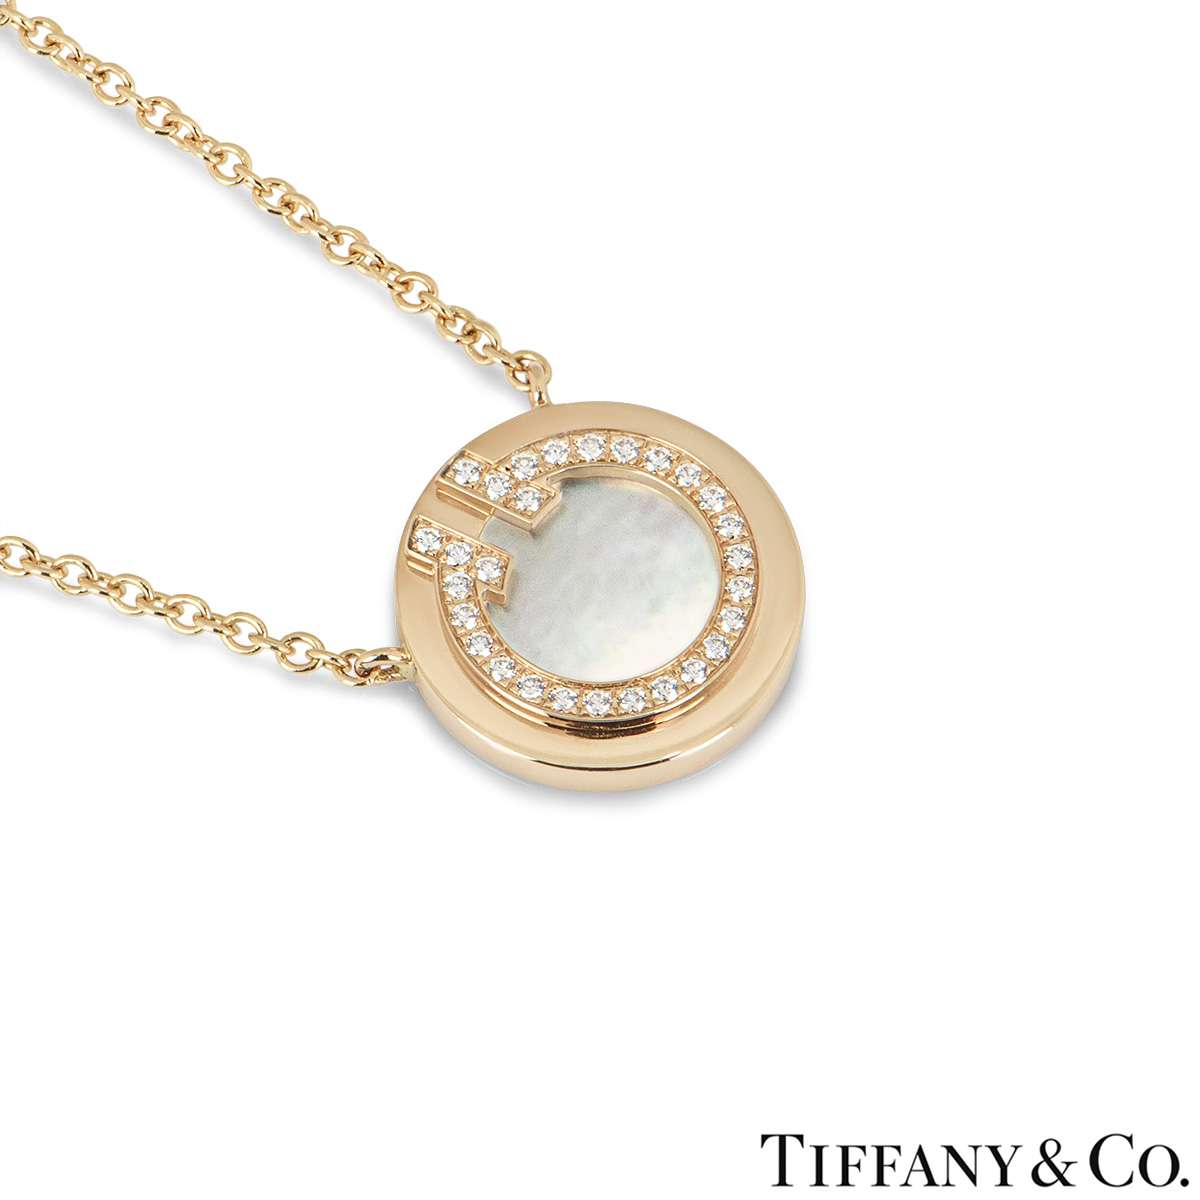 Tiffany & Co. Diamond Circle Tiffany T Pendant